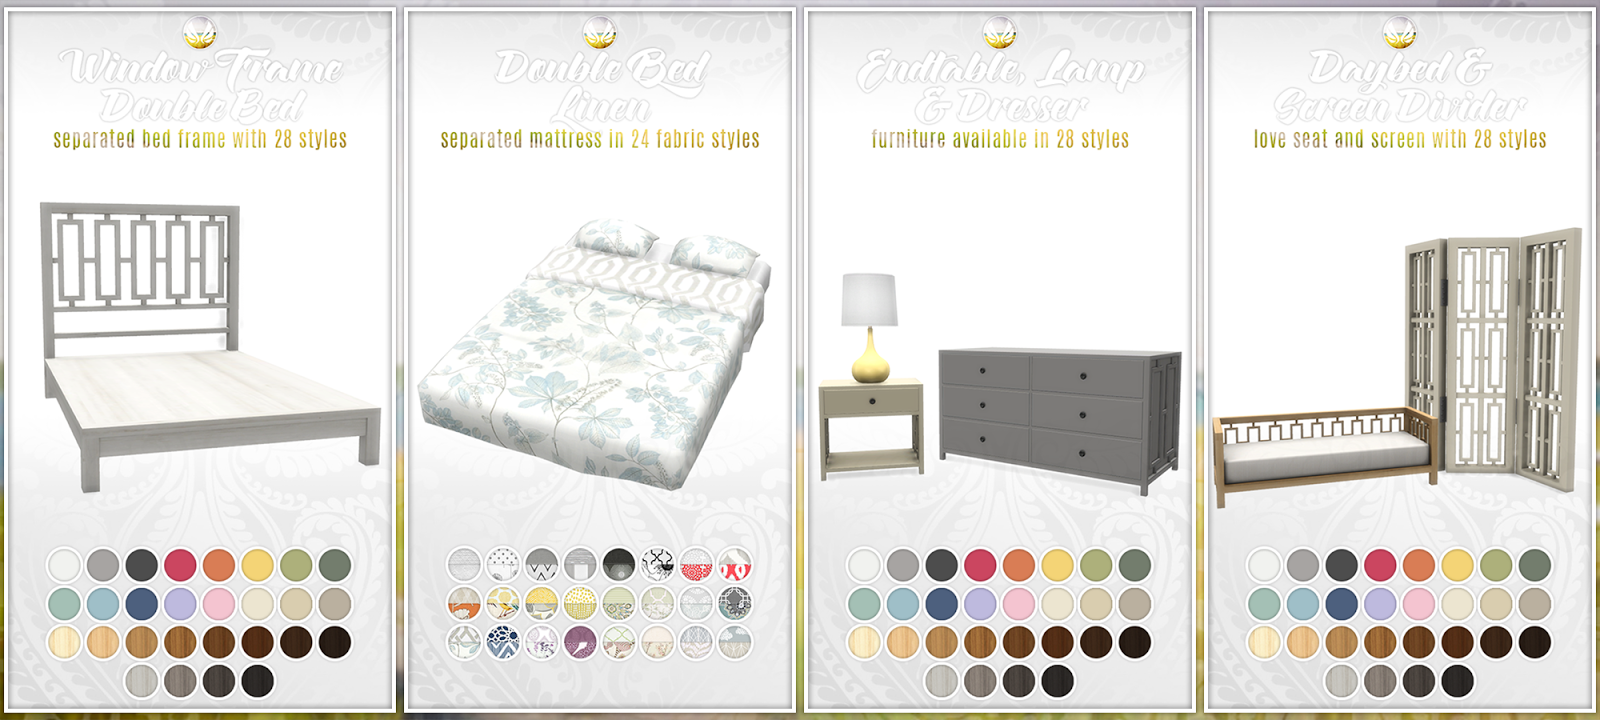 my sims 4 blog: updated - bayside furniture set - 20 items and new